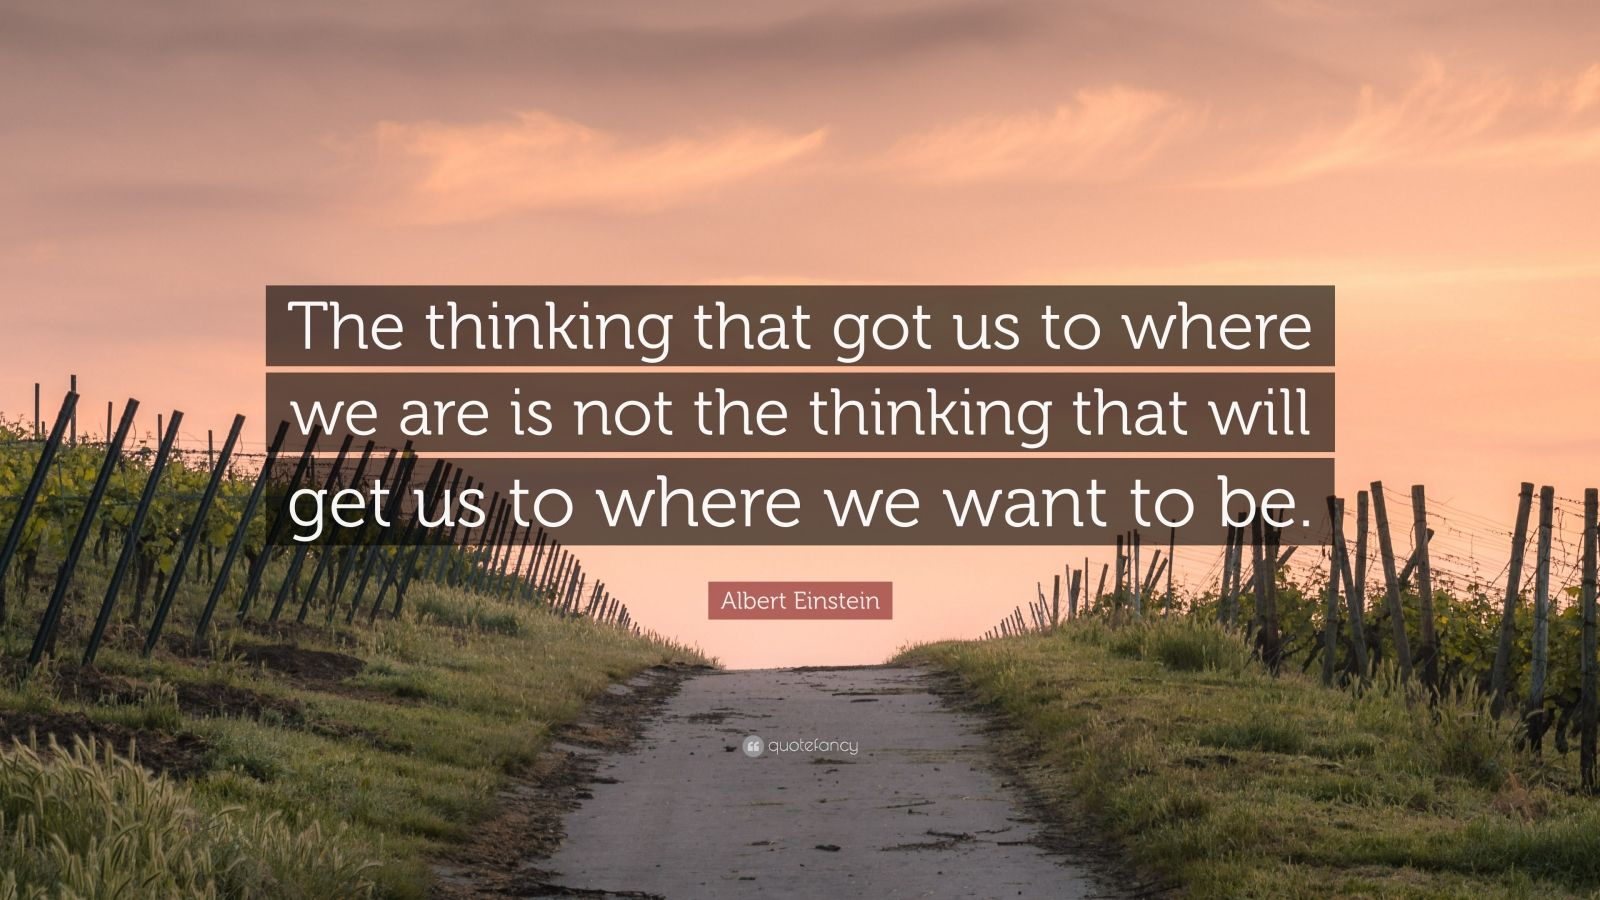 """Albert Einstein Quote: """"The thinking that got us to where we are is not the thinking that will get us to where we want to be."""""""